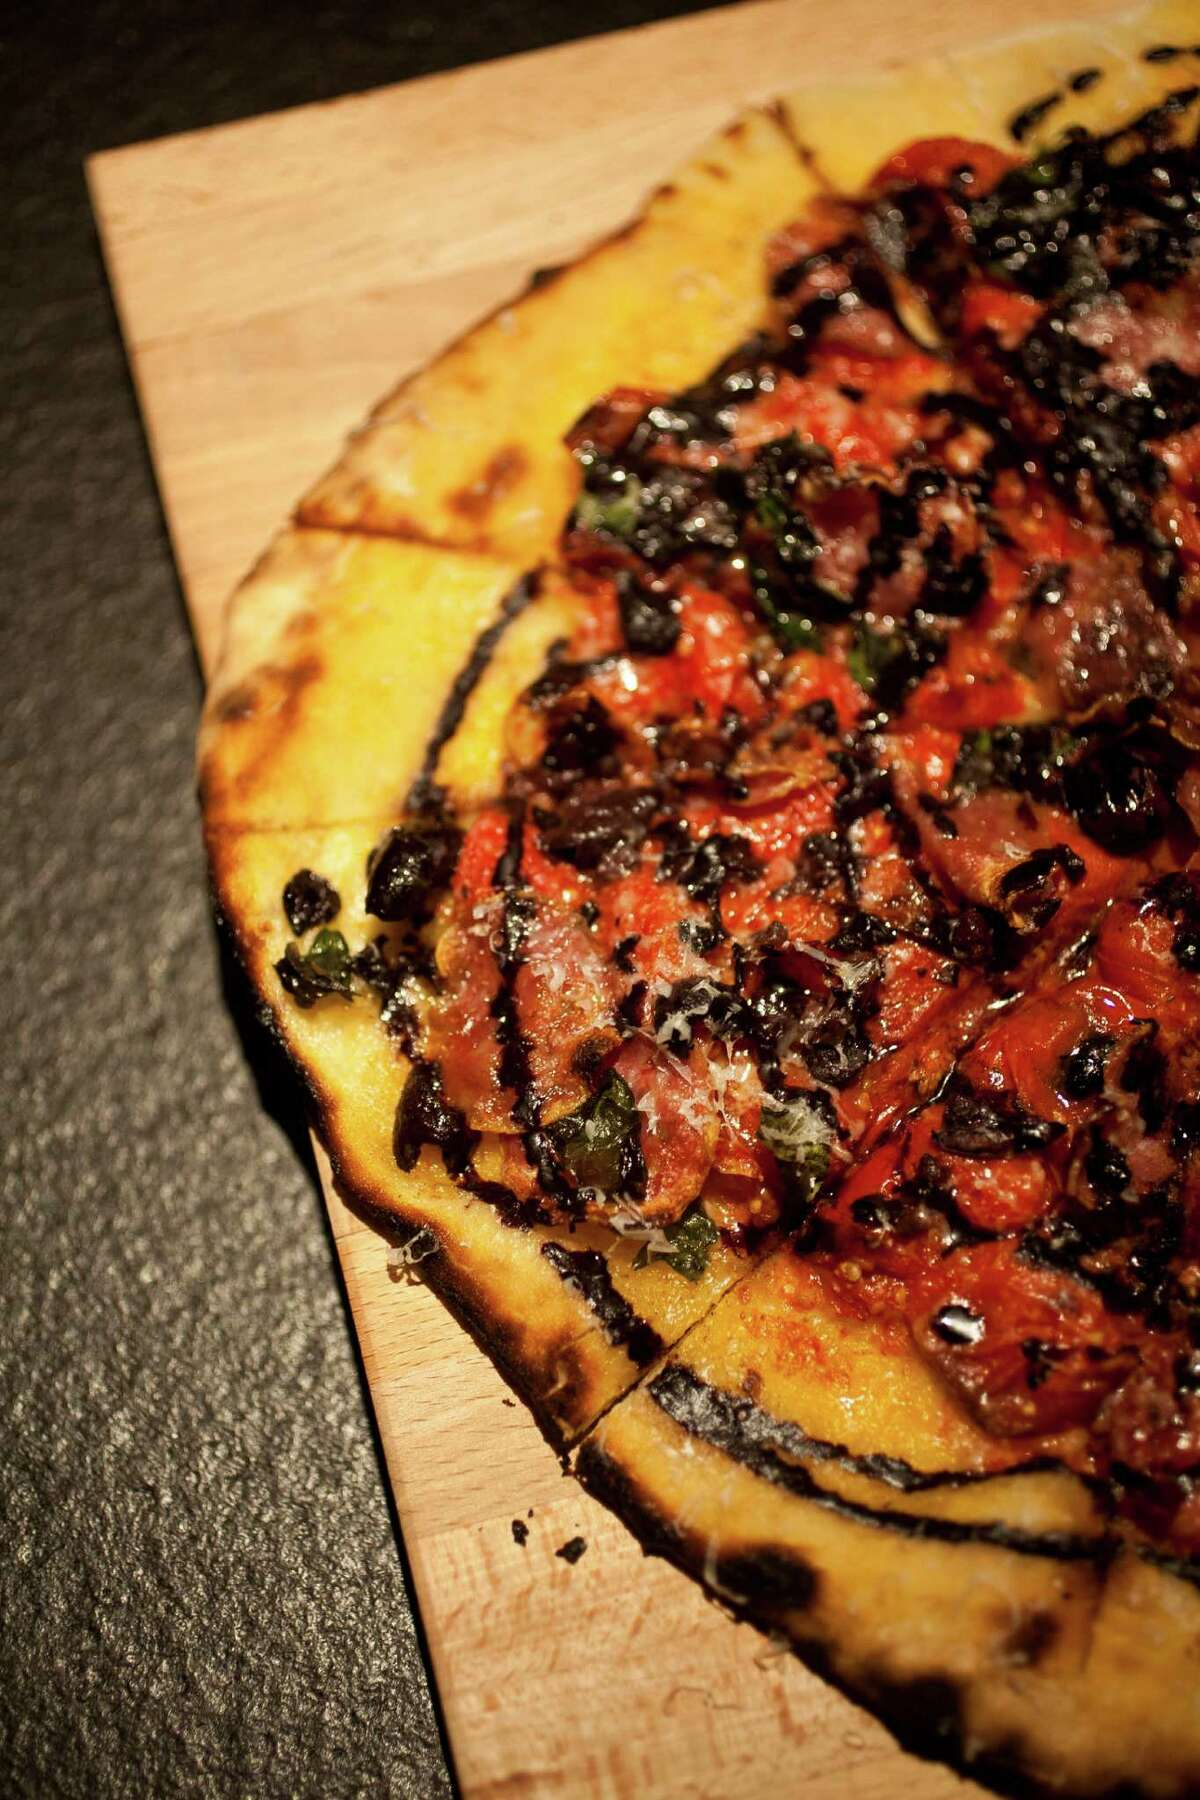 The Pass & Provisions' salumi pizza consists of cured meats with burst tomato, basil and black olive oil.